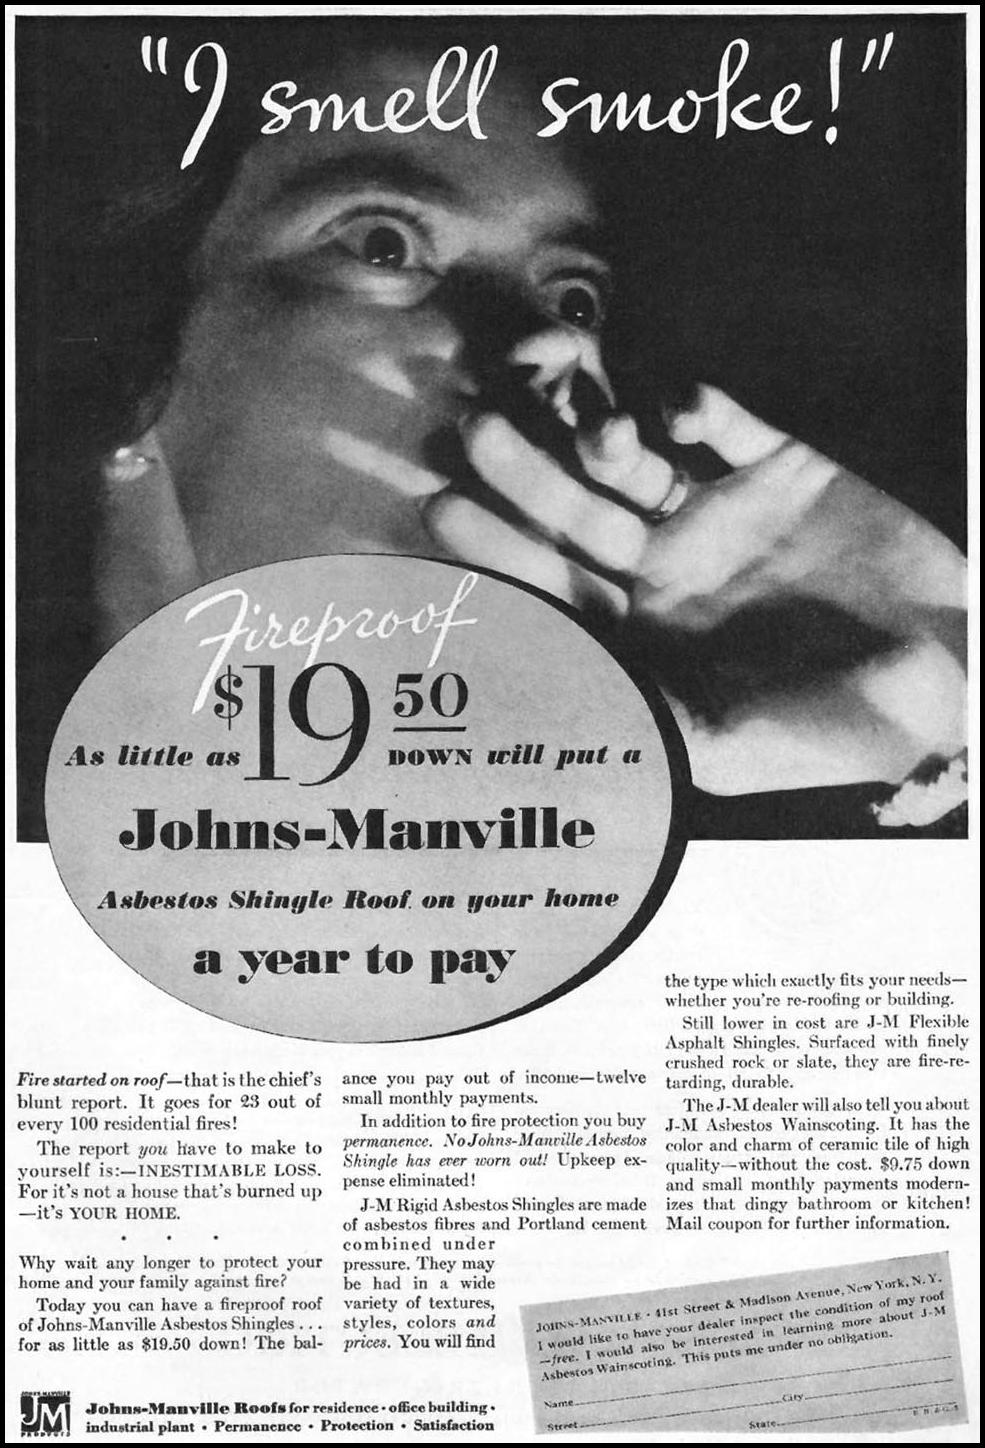 JOHNS-MANVILLE RIGID ASBESTOS SHINGLES BETTER HOMES AND GARDENS 03/01/1932 p. 5